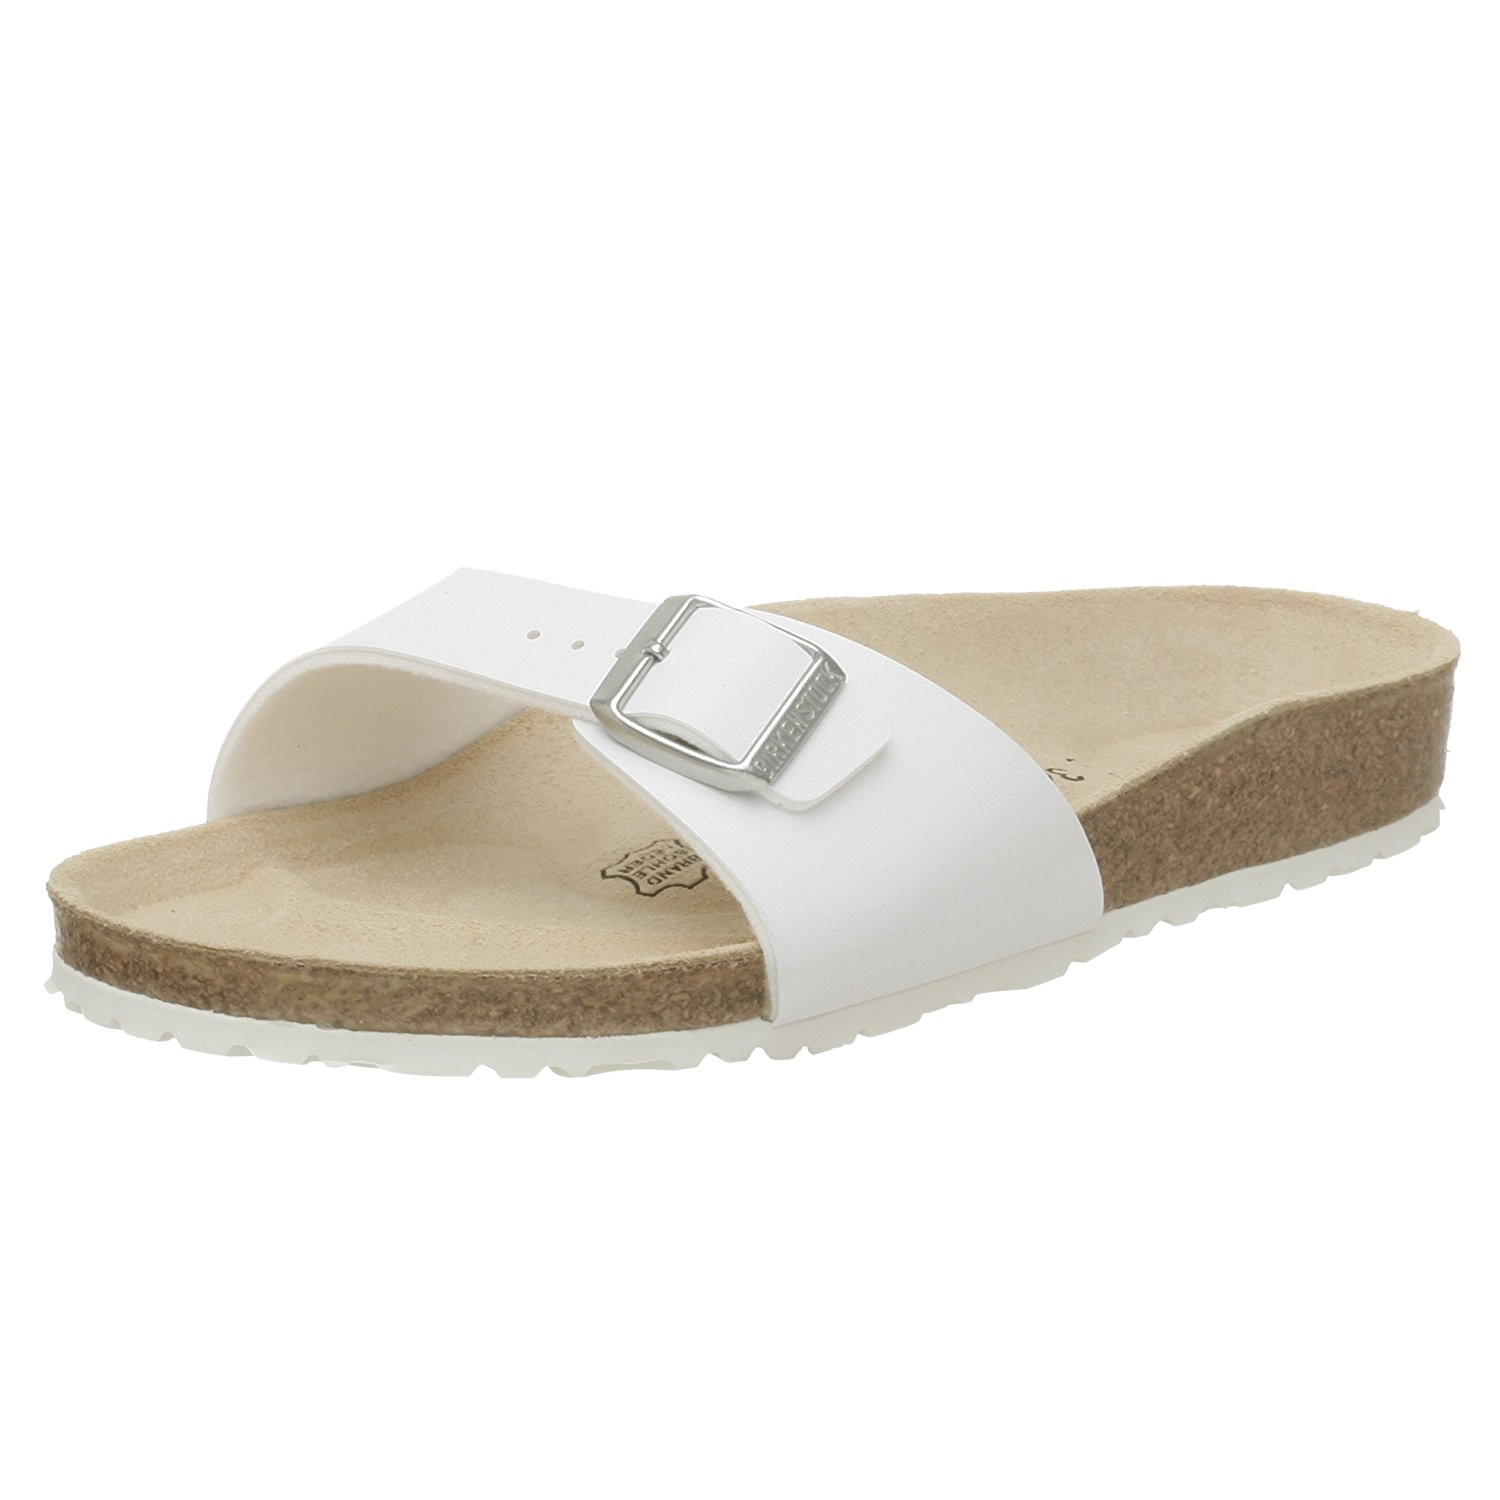 a9f9e56bad2c16 Get Quotations · Birkenstock Madrid White Womens Sandals 40731